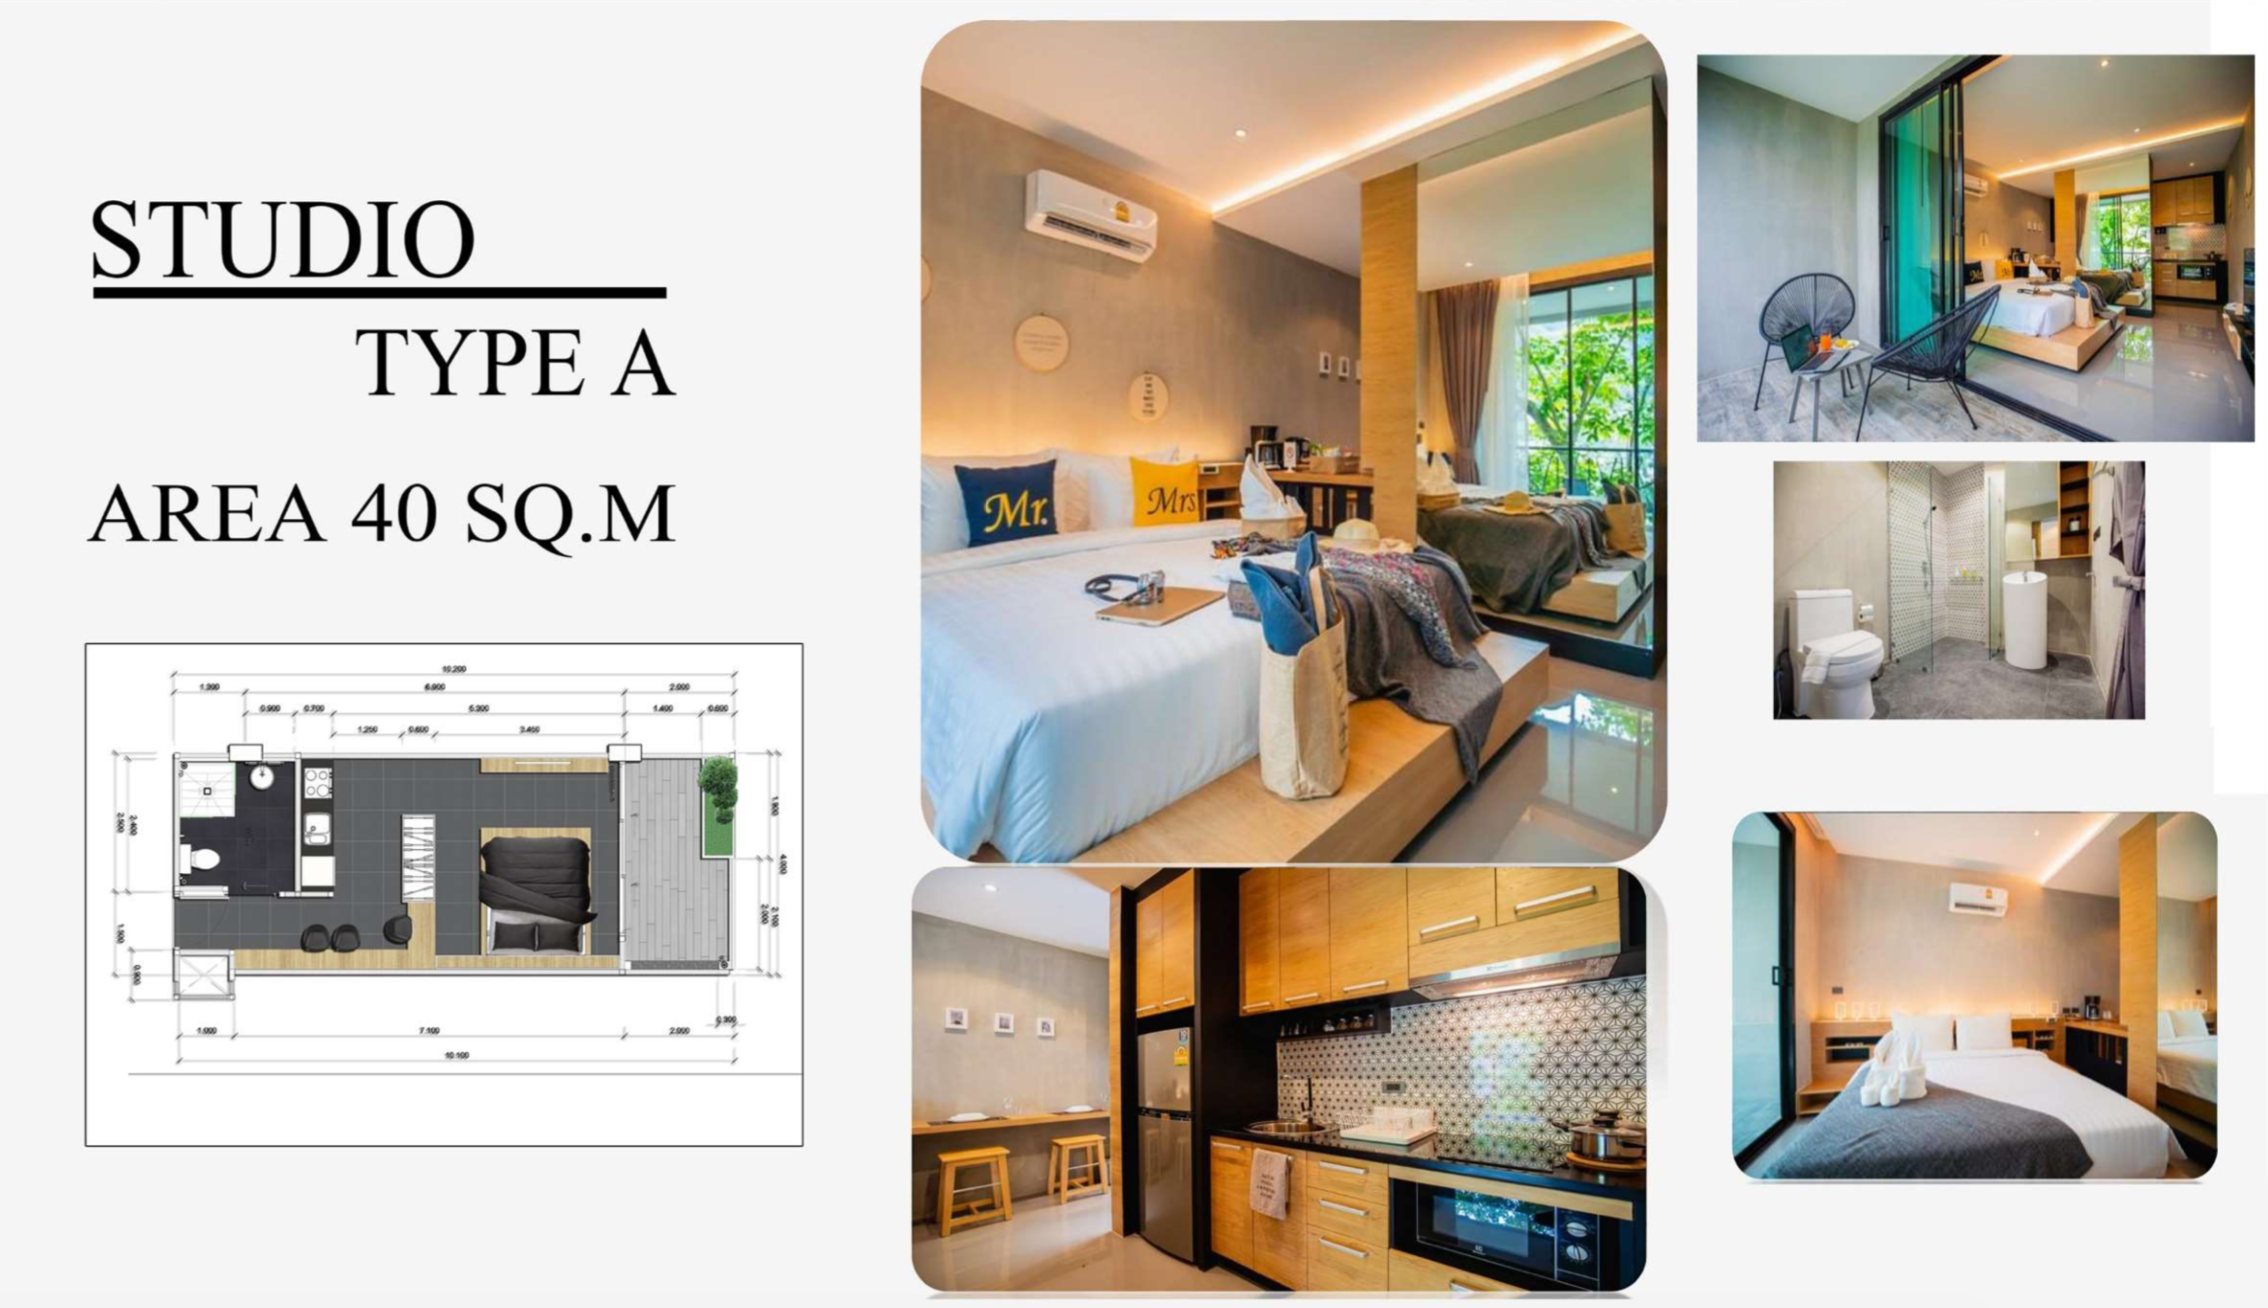 The Deluxe Rooms